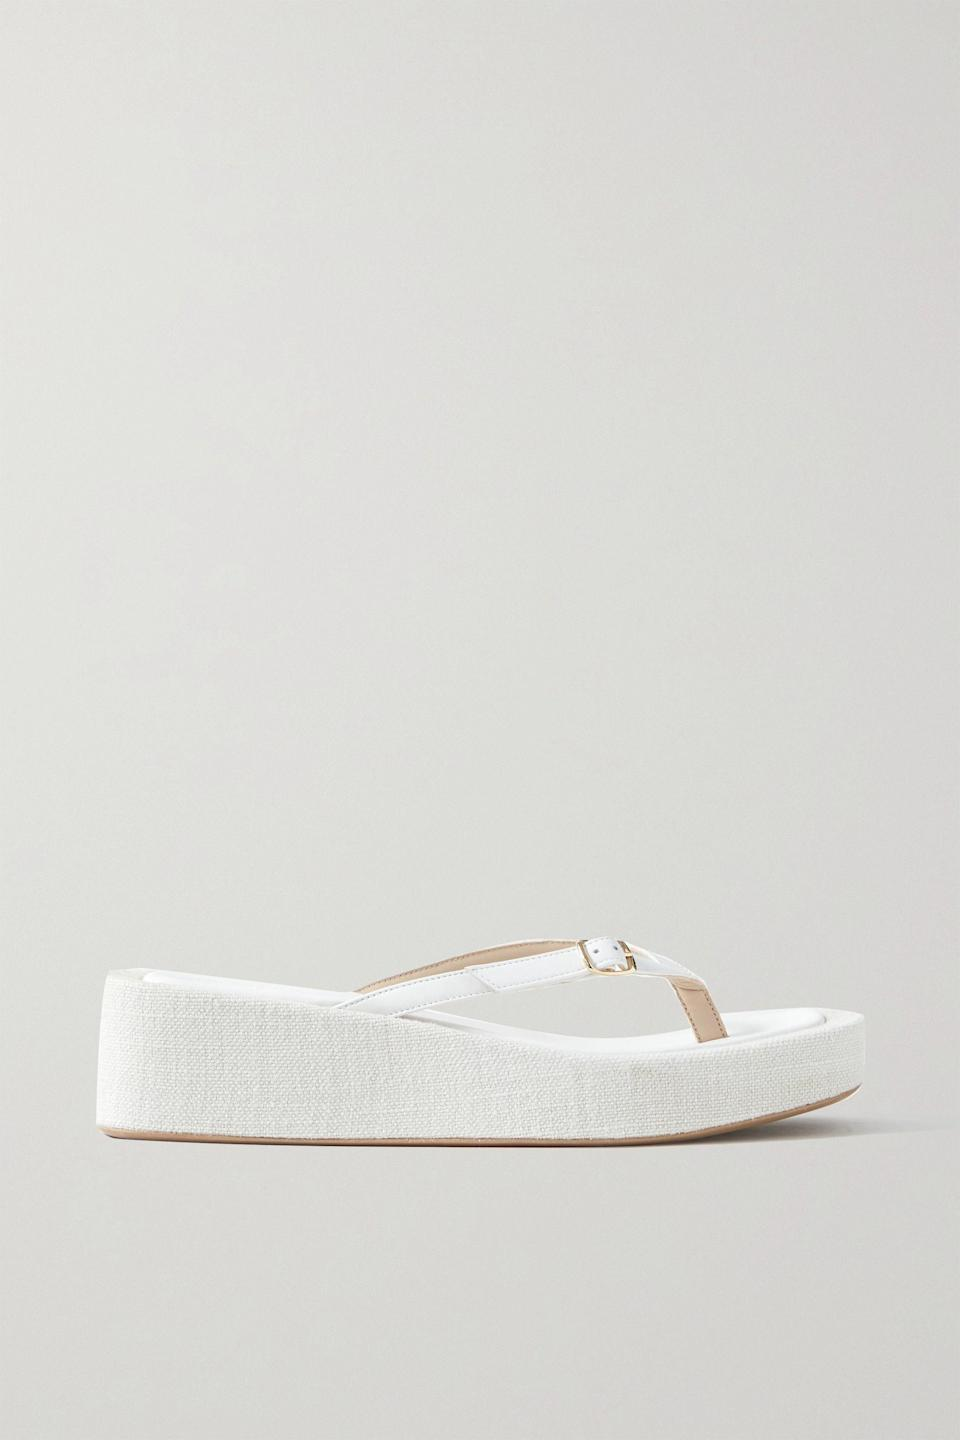 """<p><strong>Jacquemus</strong></p><p>net-a-porter.com</p><p><strong>$505.00</strong></p><p><a href=""""https://go.redirectingat.com?id=74968X1596630&url=https%3A%2F%2Fwww.net-a-porter.com%2Fen-us%2Fshop%2Fproduct%2Fjacquemus%2Fles-tatanes-lin-leather-platform-flip-flops%2F1304269&sref=https%3A%2F%2Fwww.townandcountrymag.com%2Fstyle%2Ffashion-trends%2Fg36167428%2Fstylish-platform-flip-flops%2F"""" rel=""""nofollow noopener"""" target=""""_blank"""" data-ylk=""""slk:Shop Now"""" class=""""link rapid-noclick-resp"""">Shop Now</a></p><p>These versatile linen platforms pair flawlessly with anything from mini dresses to tailored trousers—just don't forget your basket bag!</p>"""